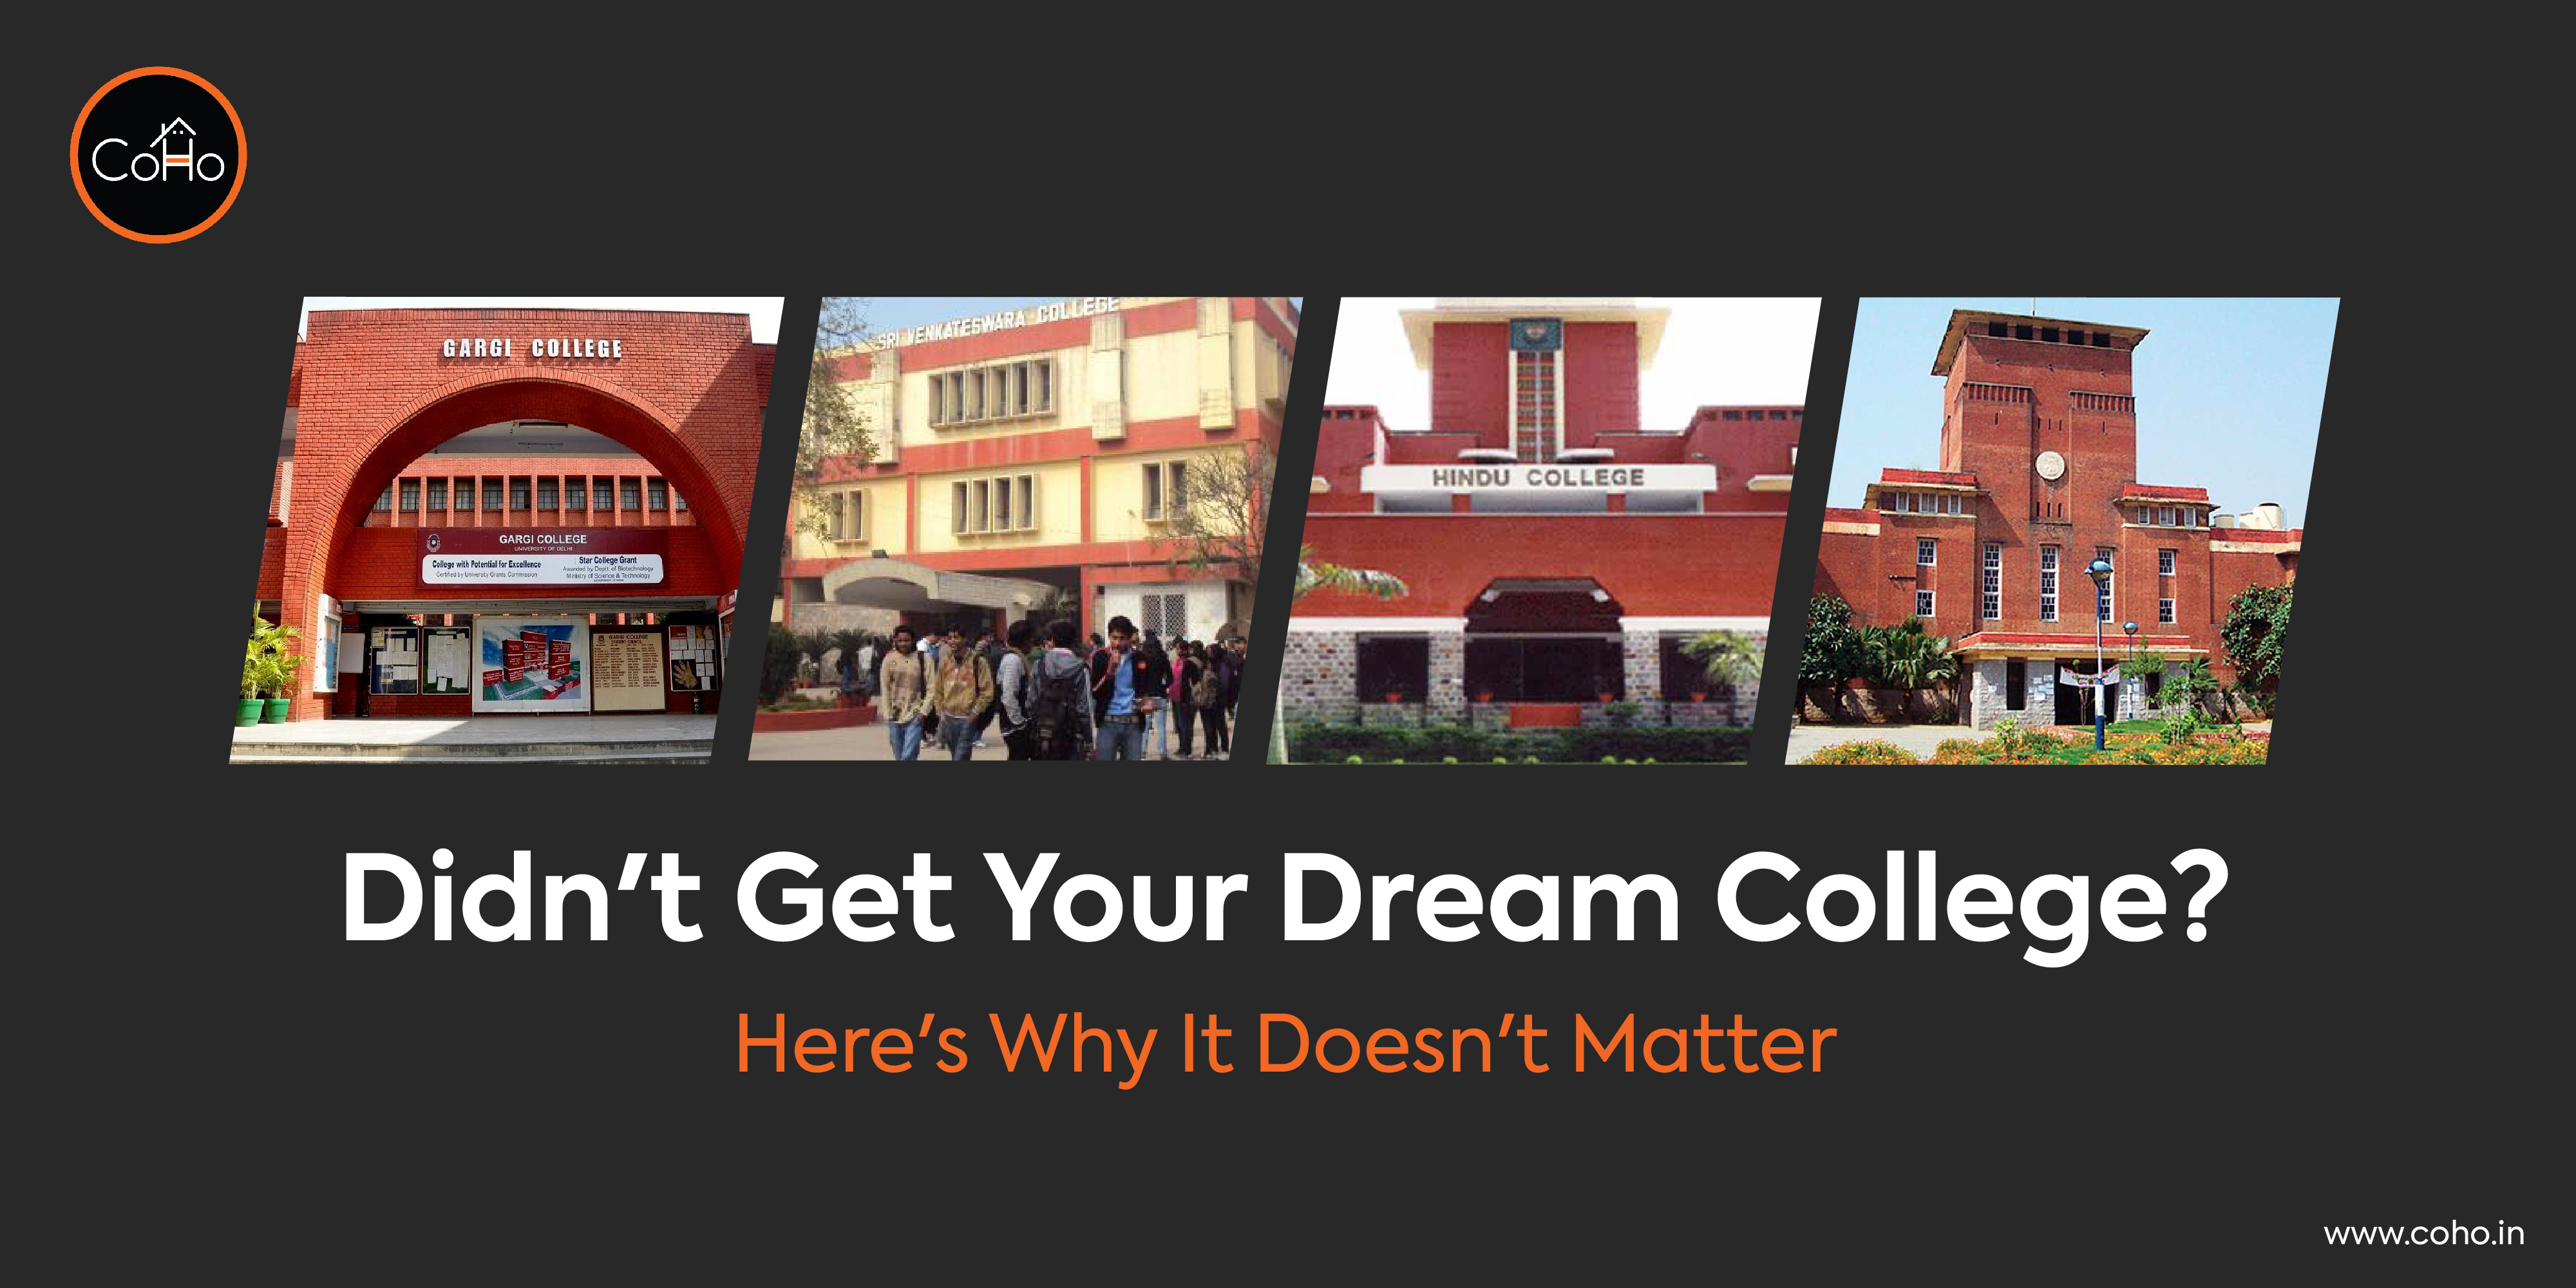 Didn't Get Your Dream College? Here's Why It Doesn't Matter